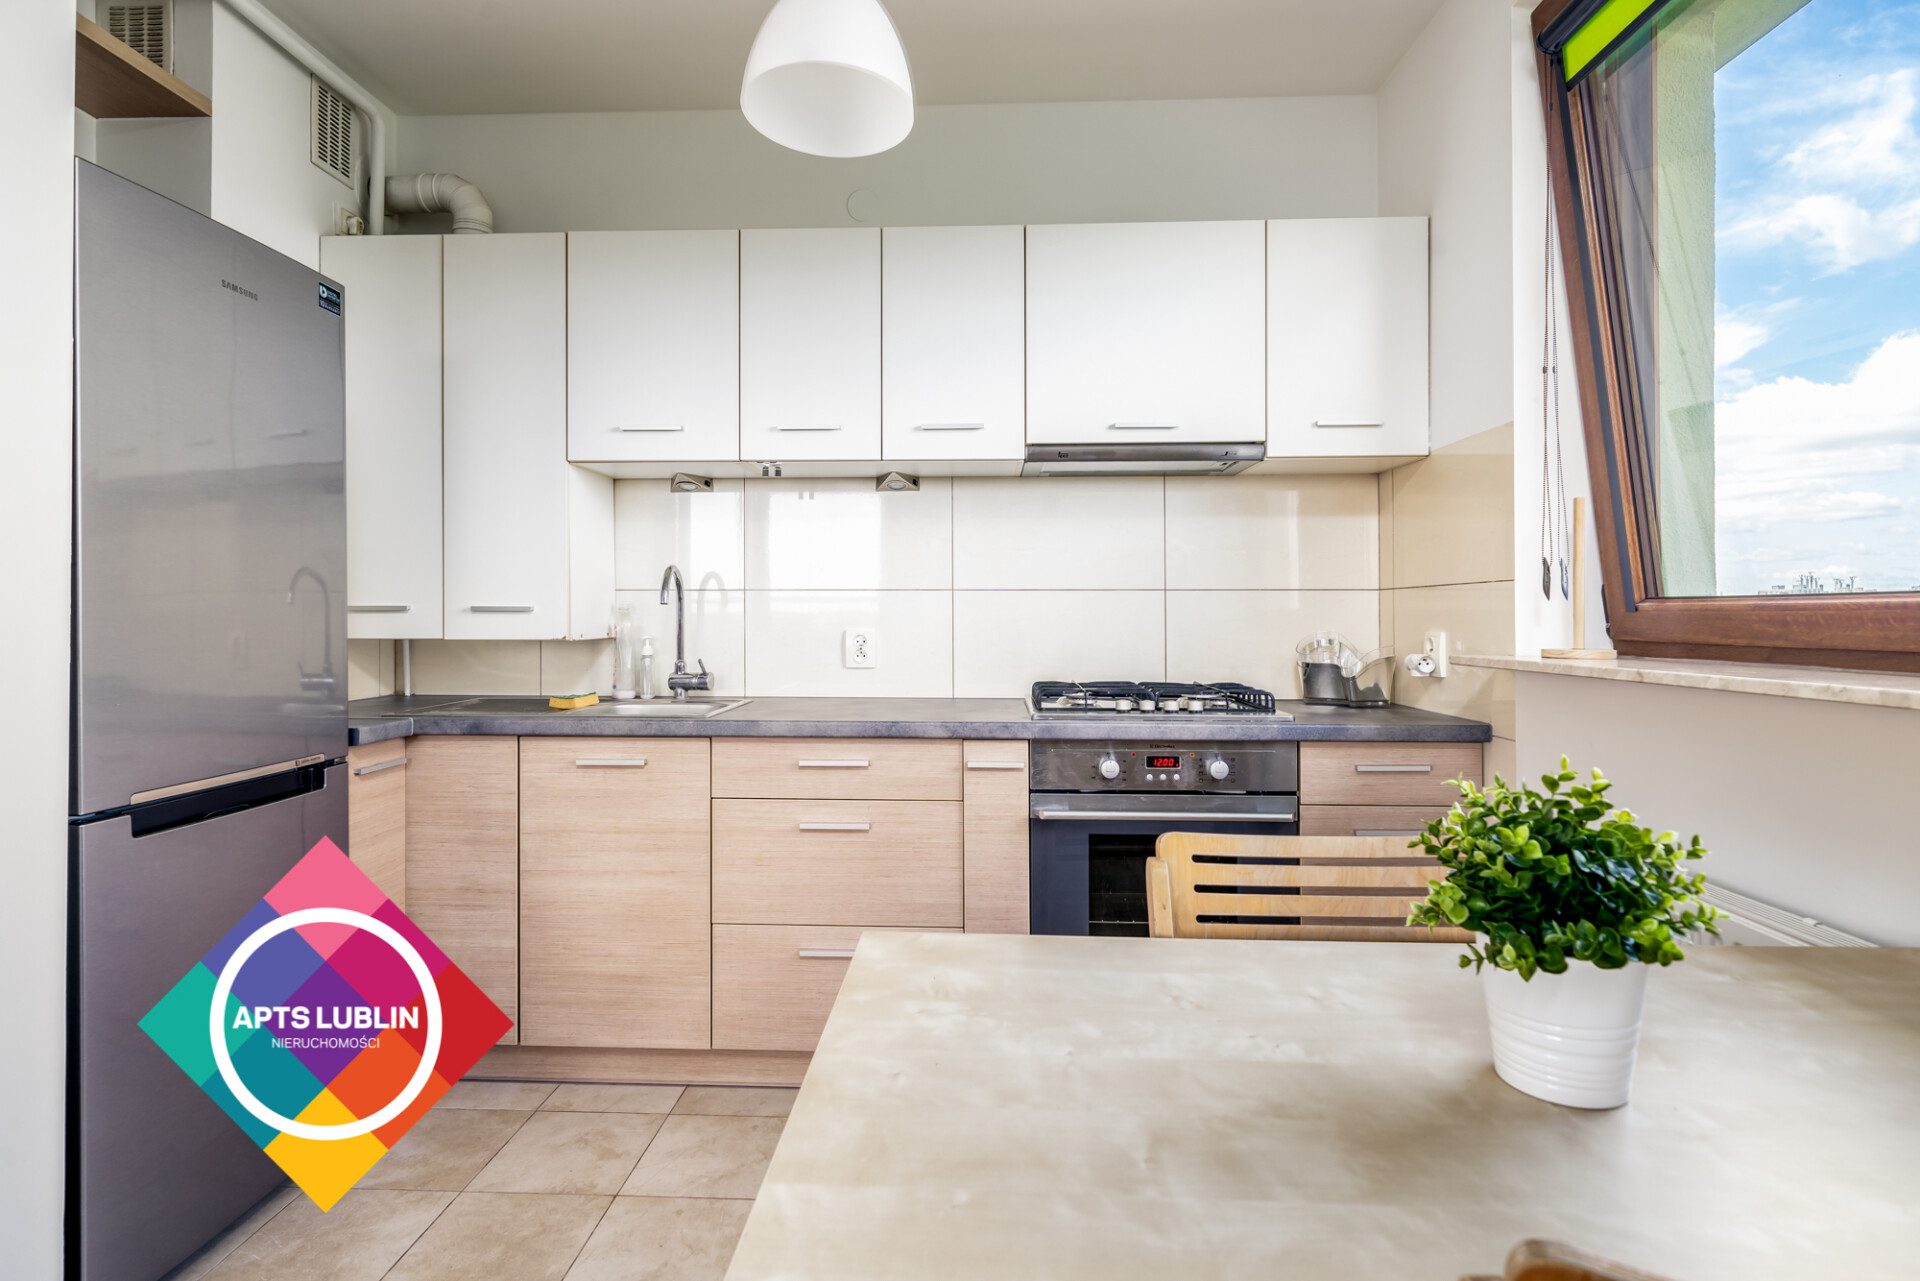 Nice and cozy apartment close to Medical University of Lublin.